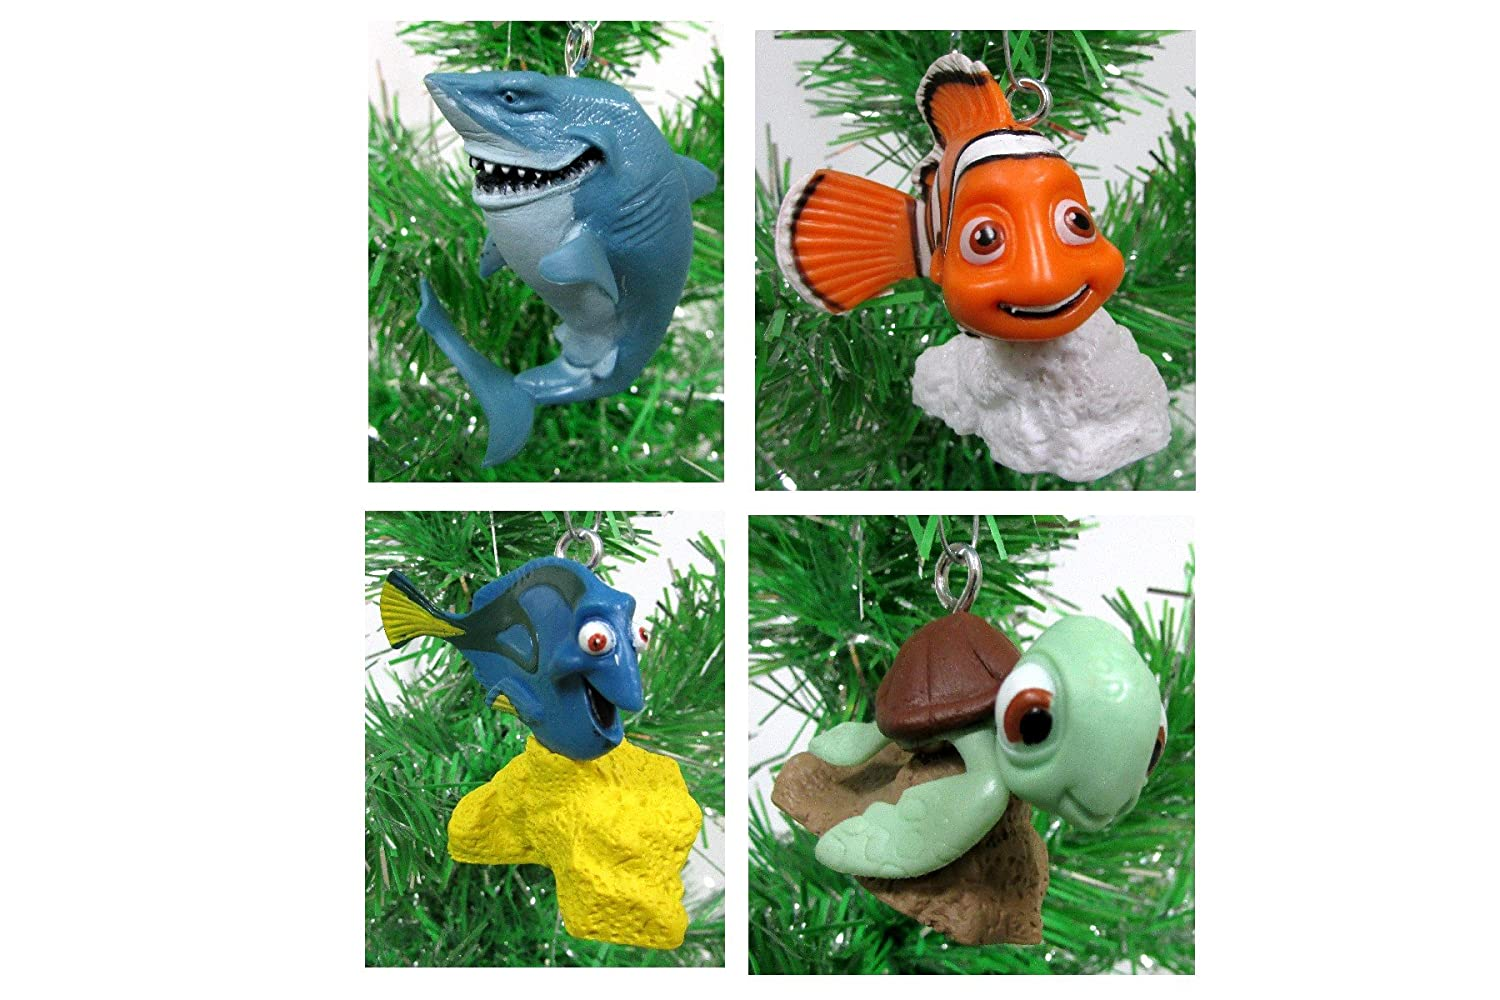 Finding Dory Finding Nemo Christmas Ornament Set - 2 to 3 Plastic Shatterproof Ornaments Perfect for Mini Desk Tree or Kids Tree by Finding Dory